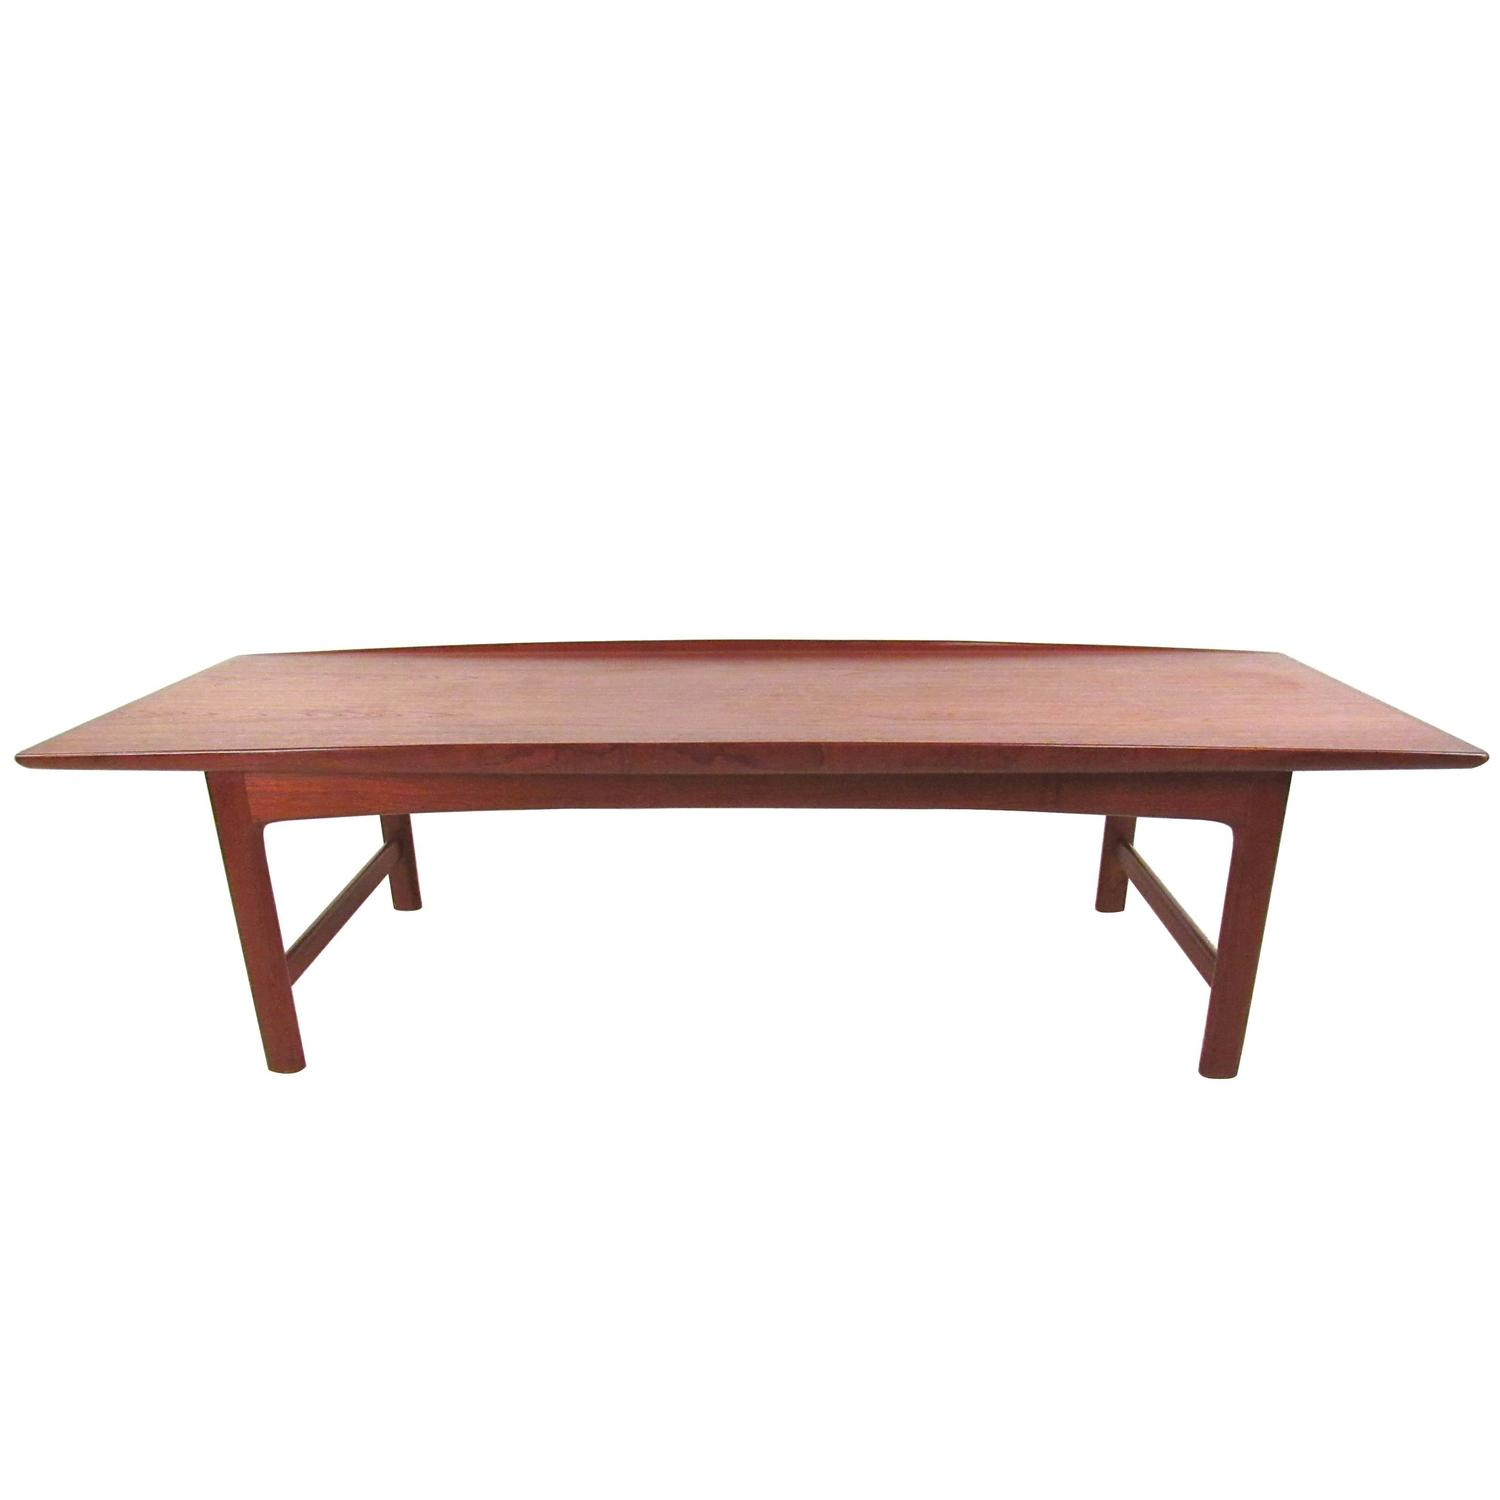 Danish Modern Boomerang Shape Teak Coffee Table by DUX of Sweden